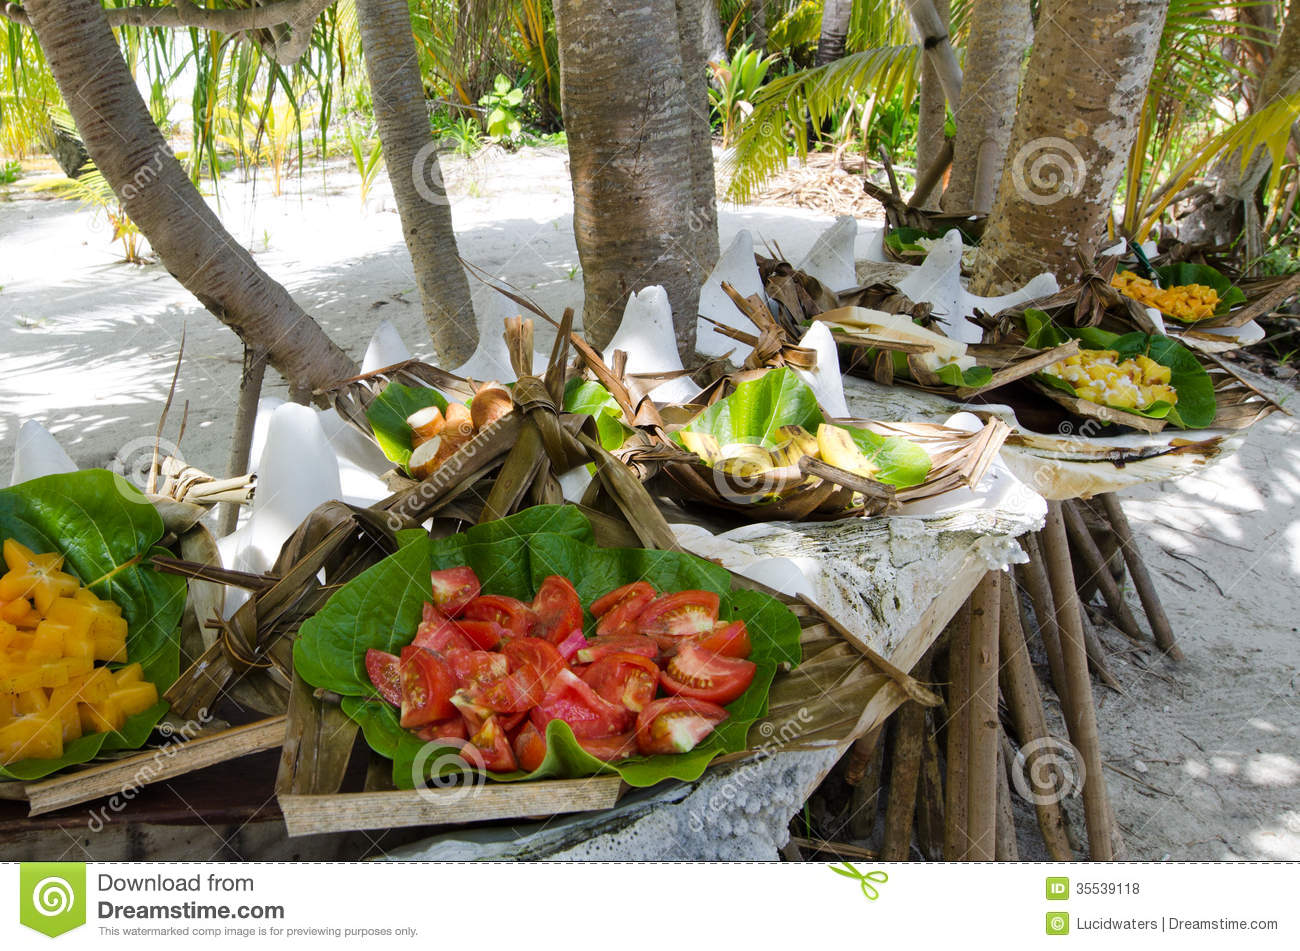 Tropical Food Served Outdoor In Aitutaki Lagoon Cook Islands Royalty Free Stock Photos Image